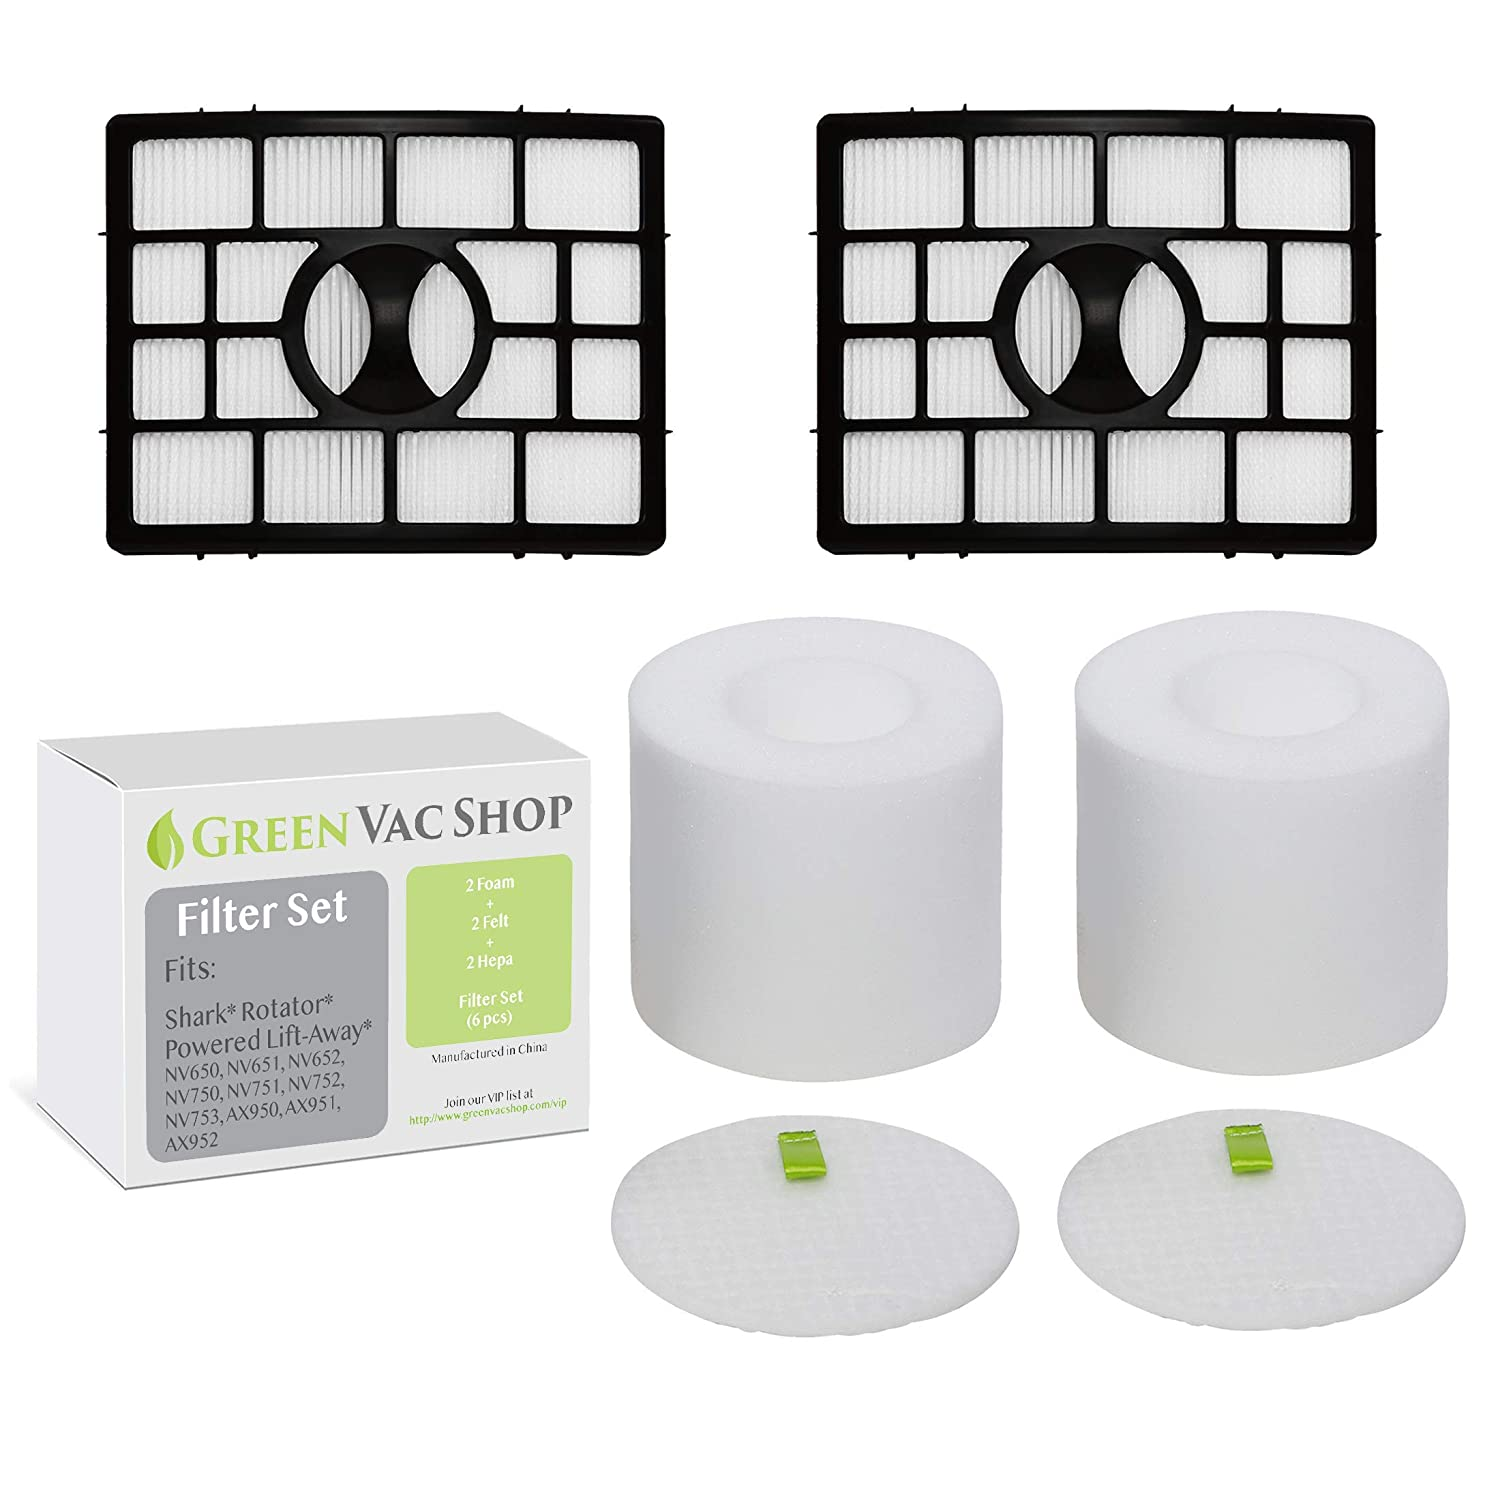 GreenVacShop Shark Rotator APEX DuoClean Powered Lift-Away NV650, NV651, NV652, NV750, NV751, NV752, NV753, AX950, AX951, AX952 Replacement Filter Set, XFF650 XHF650 (2 Foam + 2 Felt + 2 HEPA)